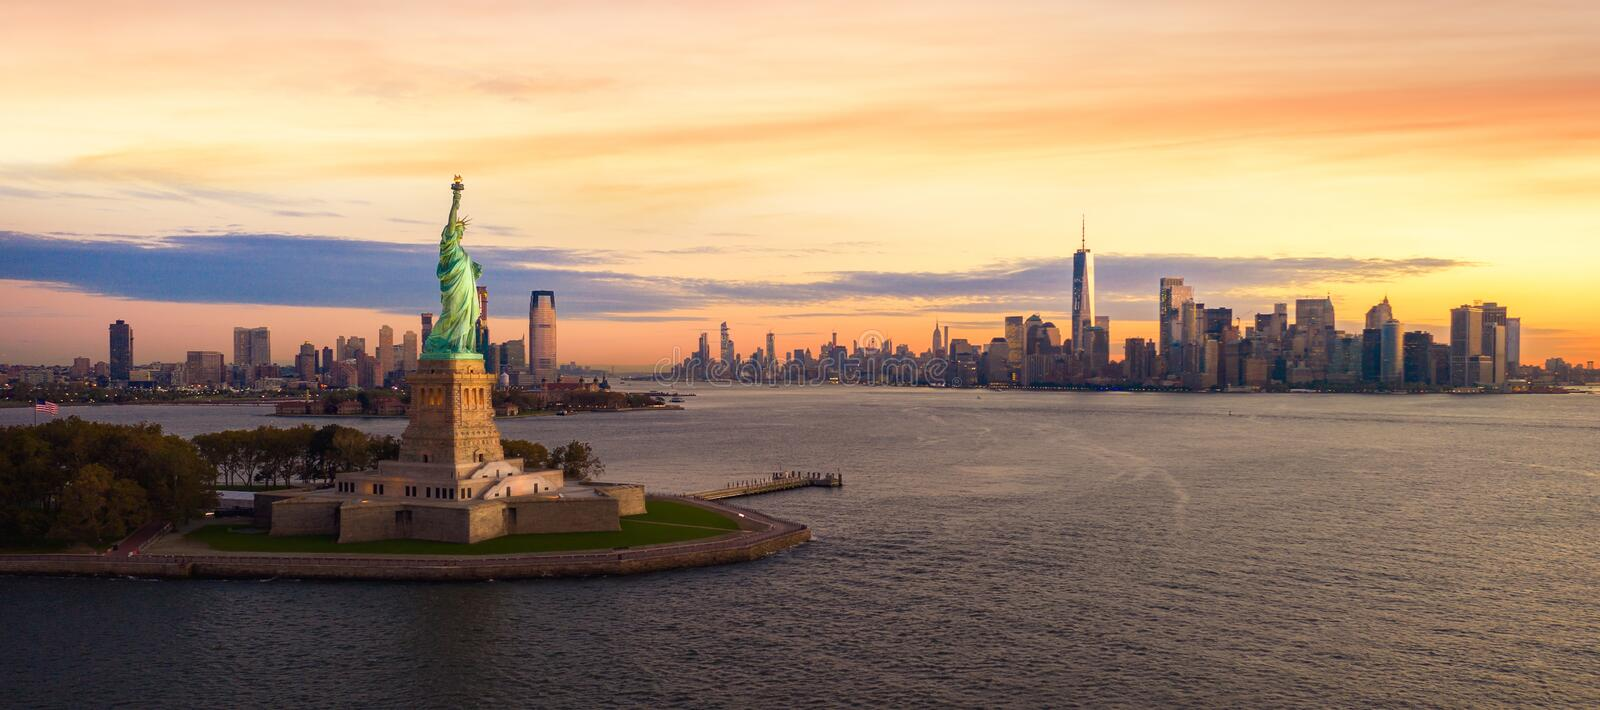 Liberty statue in New York city royalty free stock photography